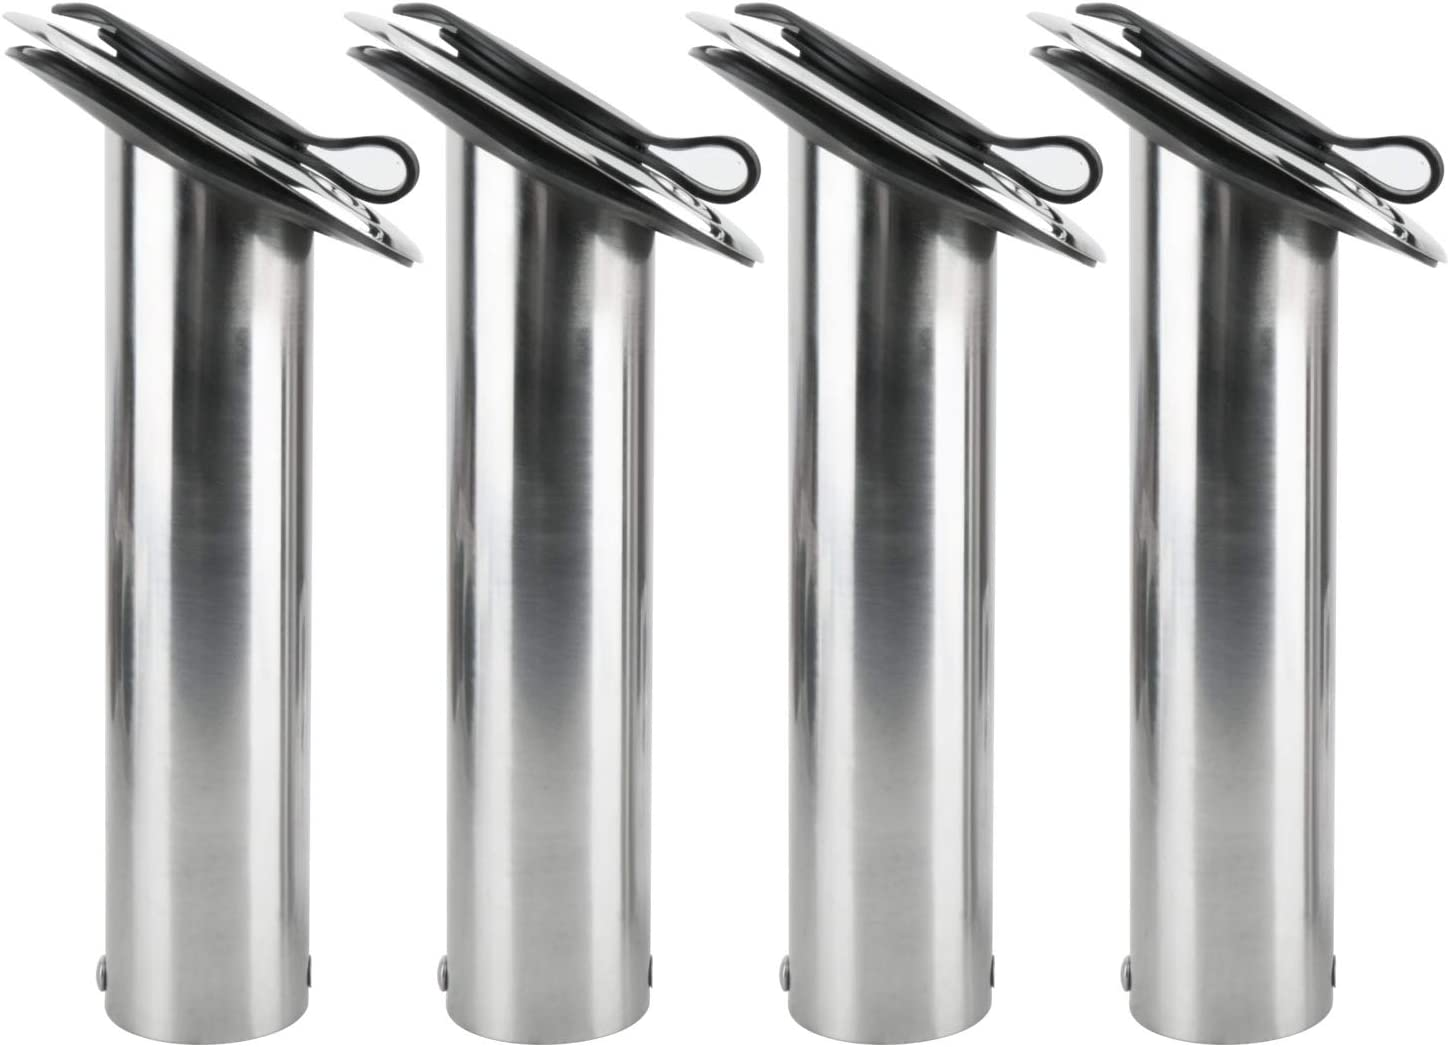 Amarine Made 4 Pack of Stainless Steel Rod Holders Rubber with Cap, Liner, Gasket